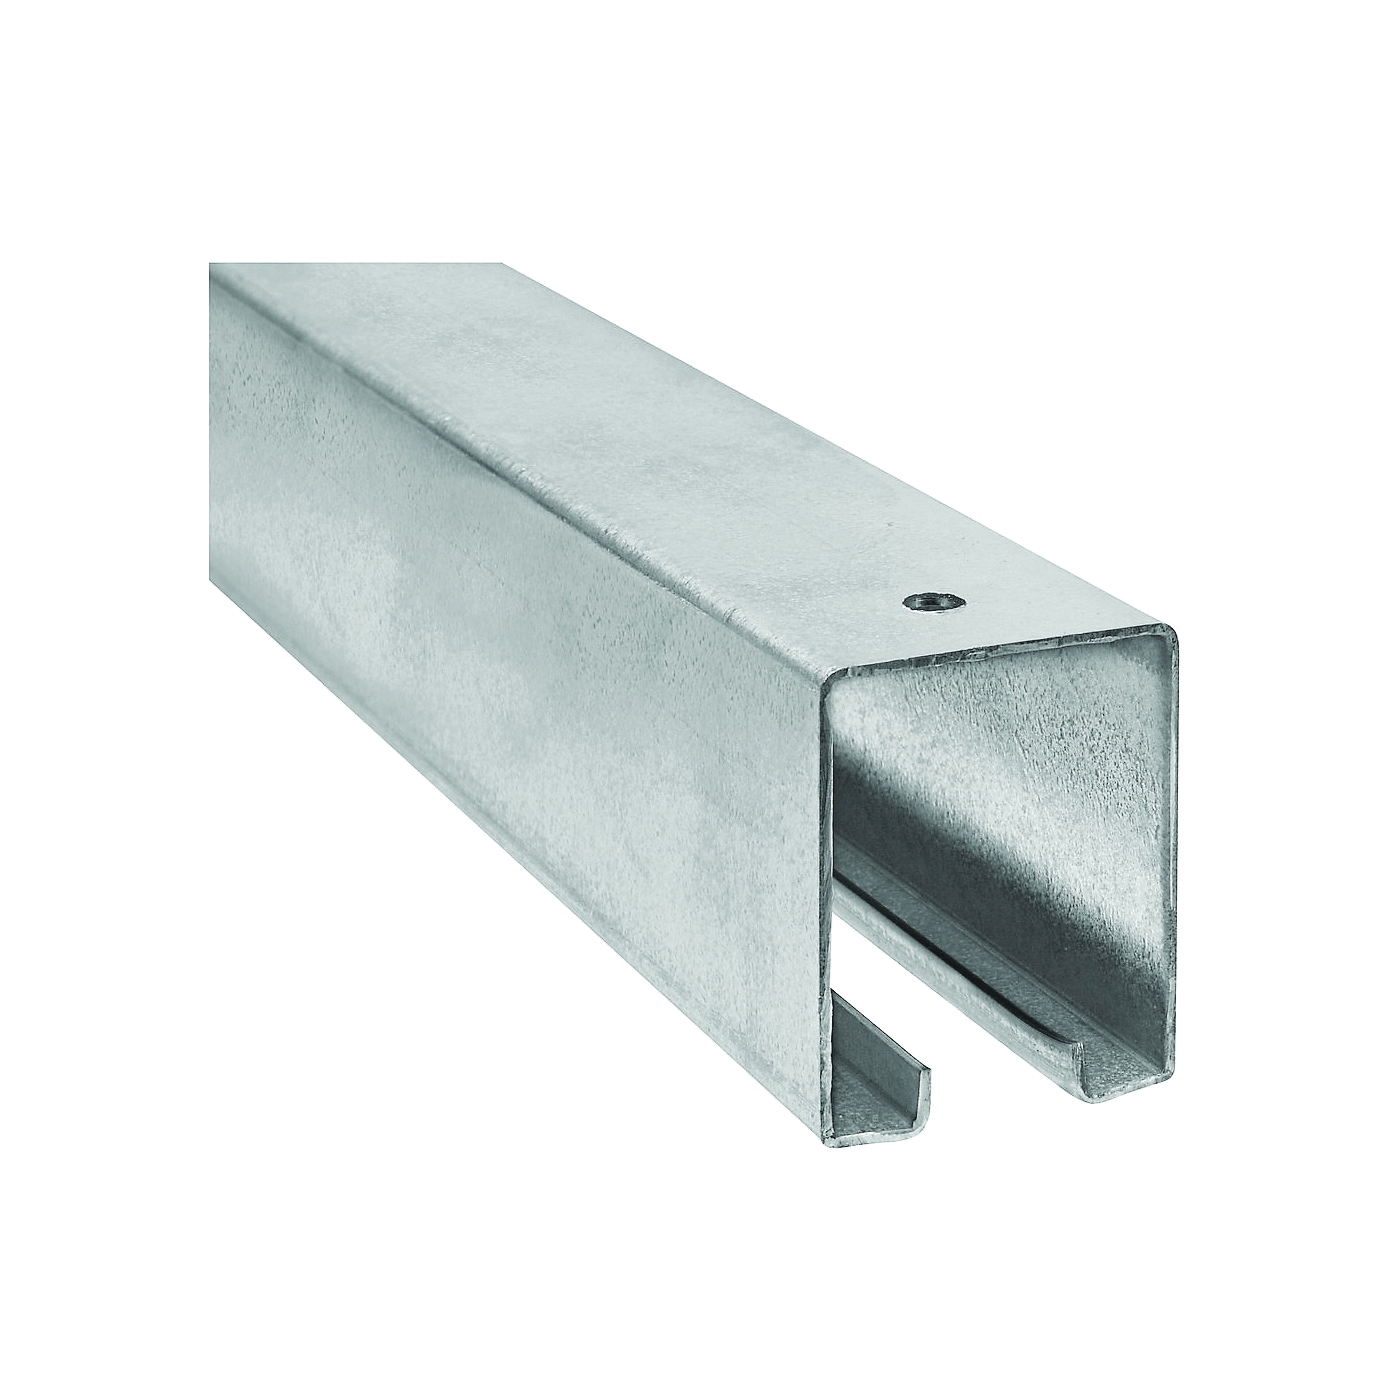 Picture of National Hardware N105-213 Box Rail, Steel, Galvanized, 1-57/64 in W, 2-13/32 in H, 10 ft L